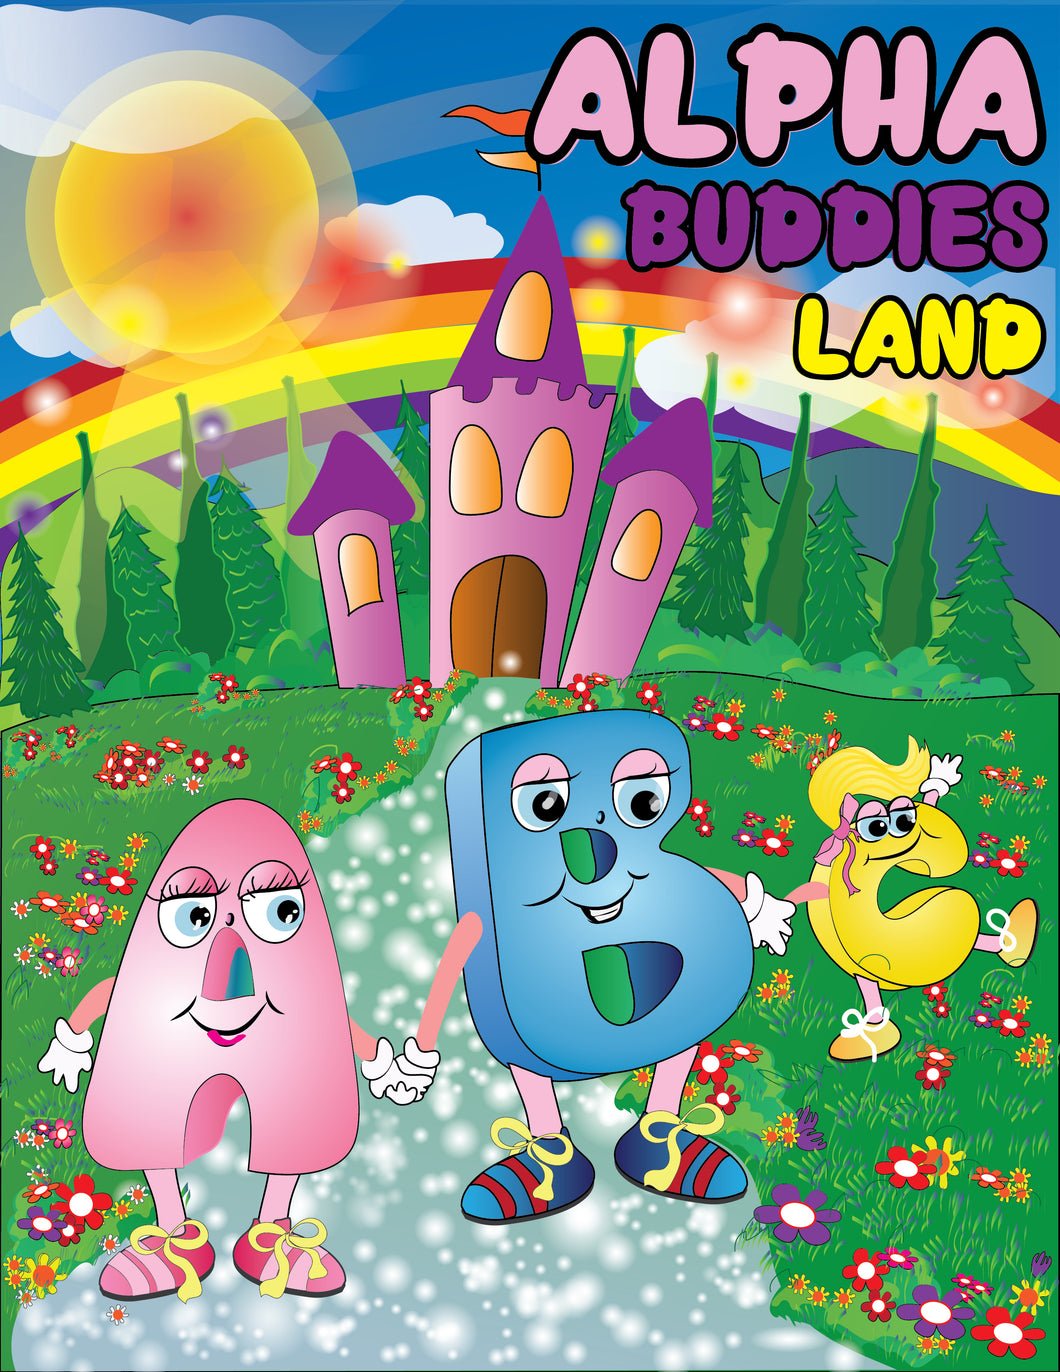 Alpha Buddies Land Picture Book